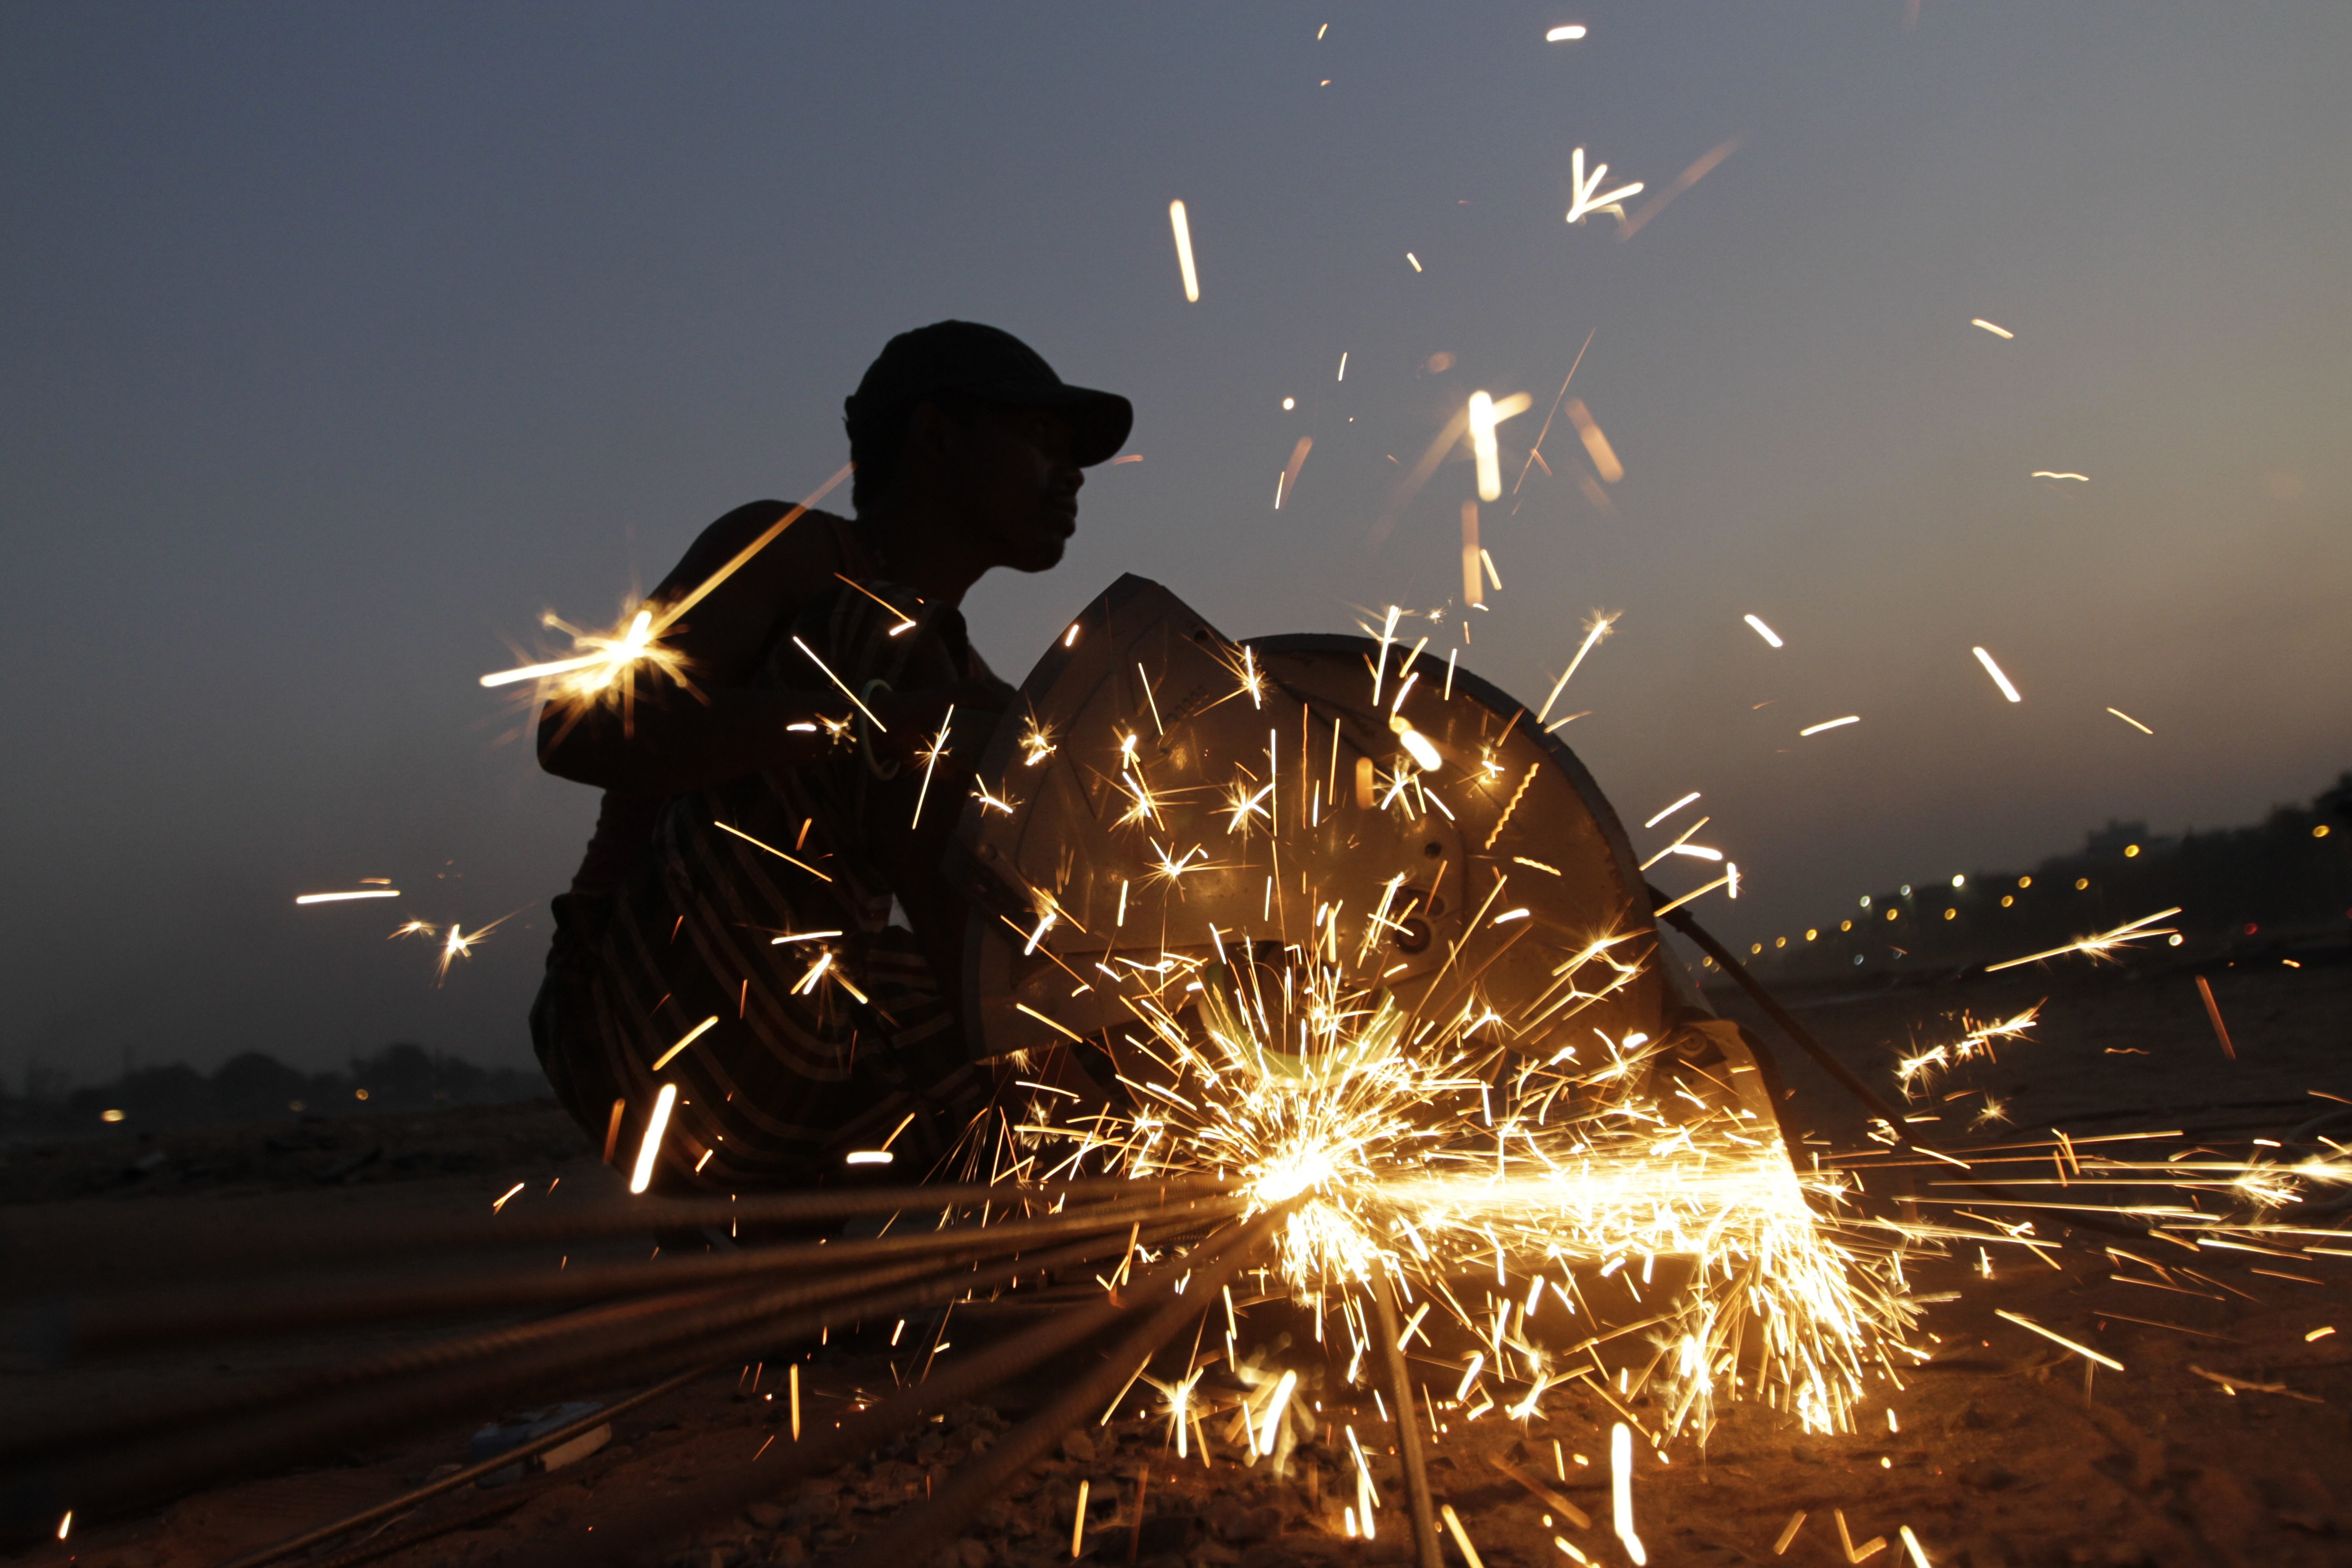 indias deindustrialization What's even more striking, the onset of deindustrialization is now taking place   in india, manufacturing employment began to lose ground (in.